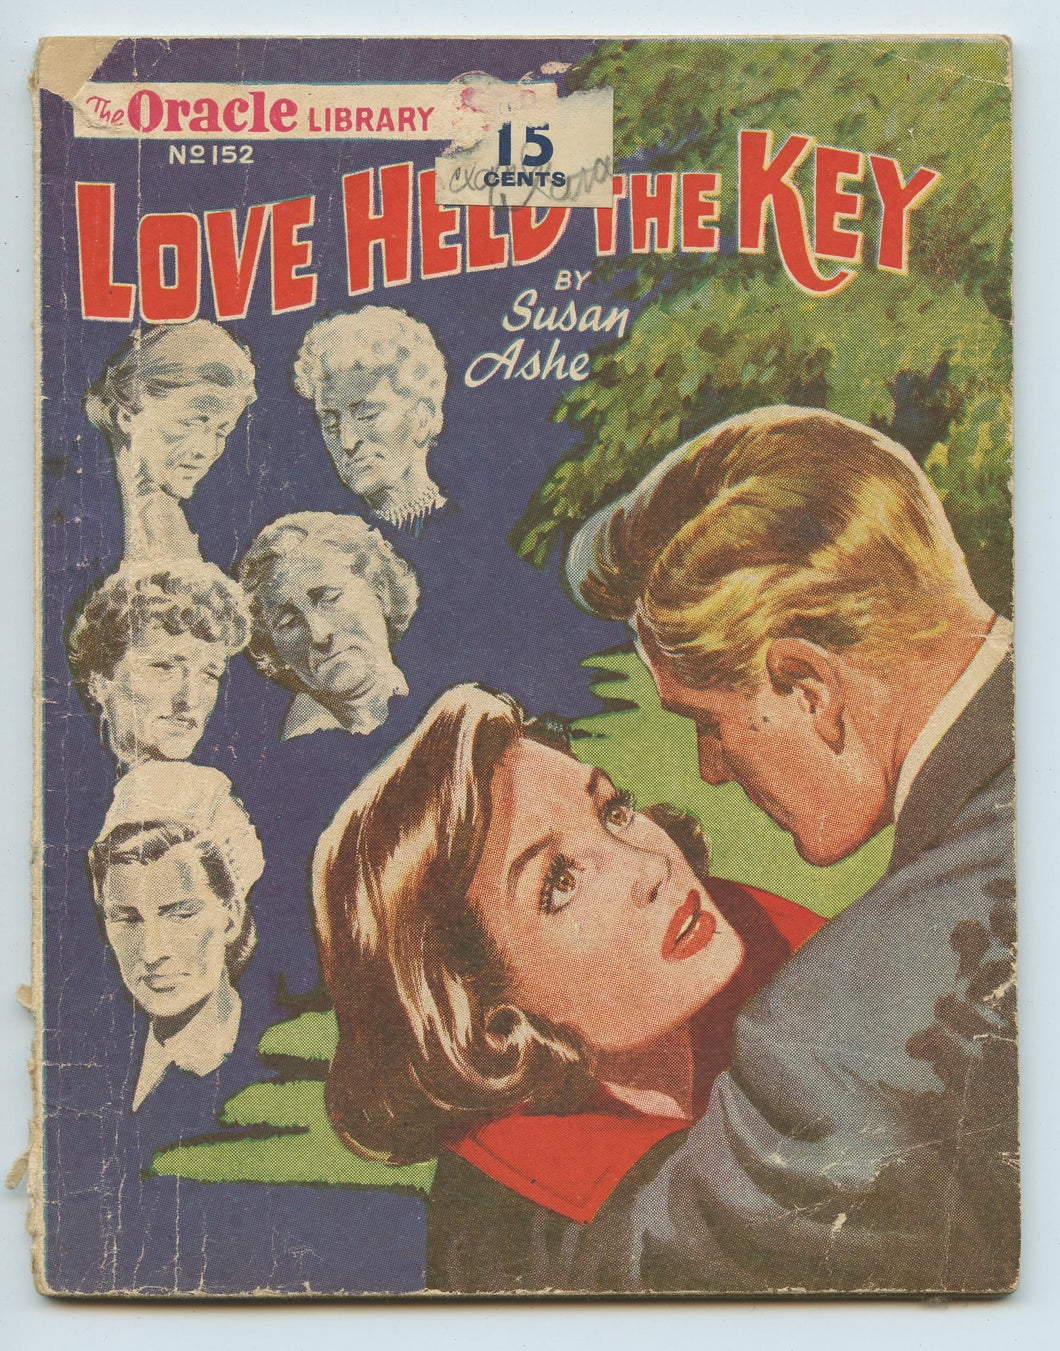 Love Held The Key